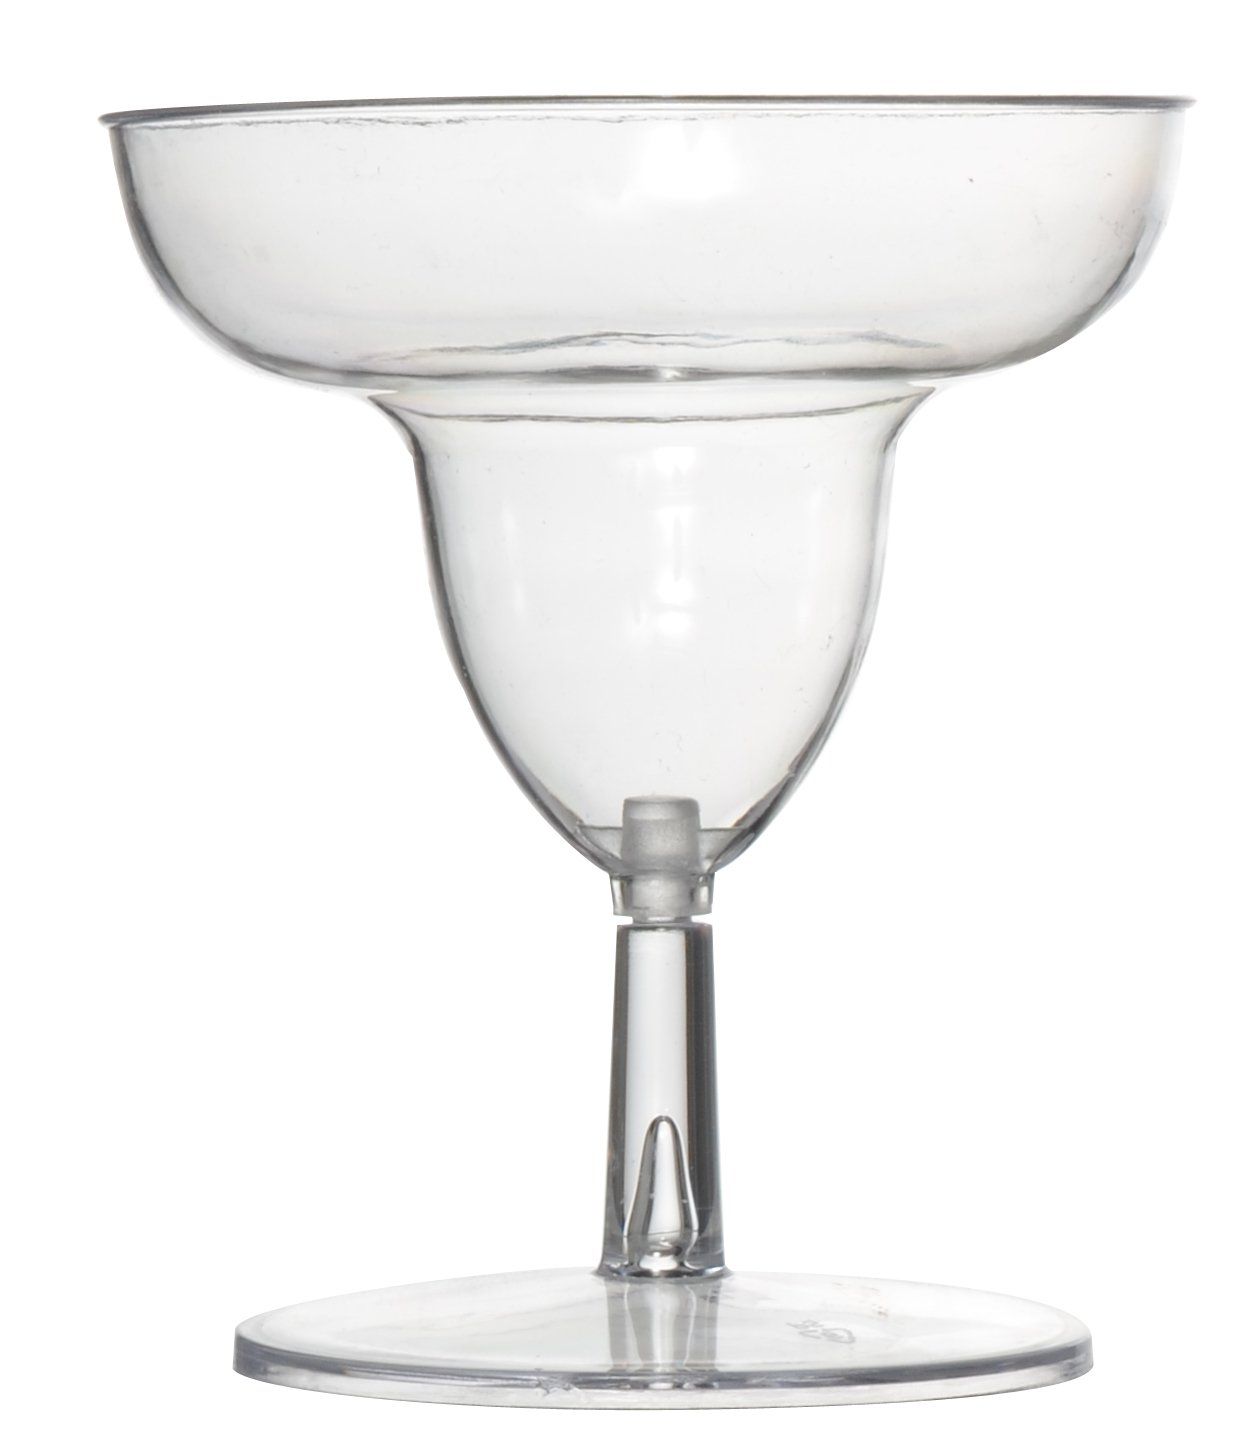 Fineline Settings Tiny Temptations Clear Two Piece 2 Oz. Tiny Toasts-Margarita Glass  120 Pieces by Tiny Temptations